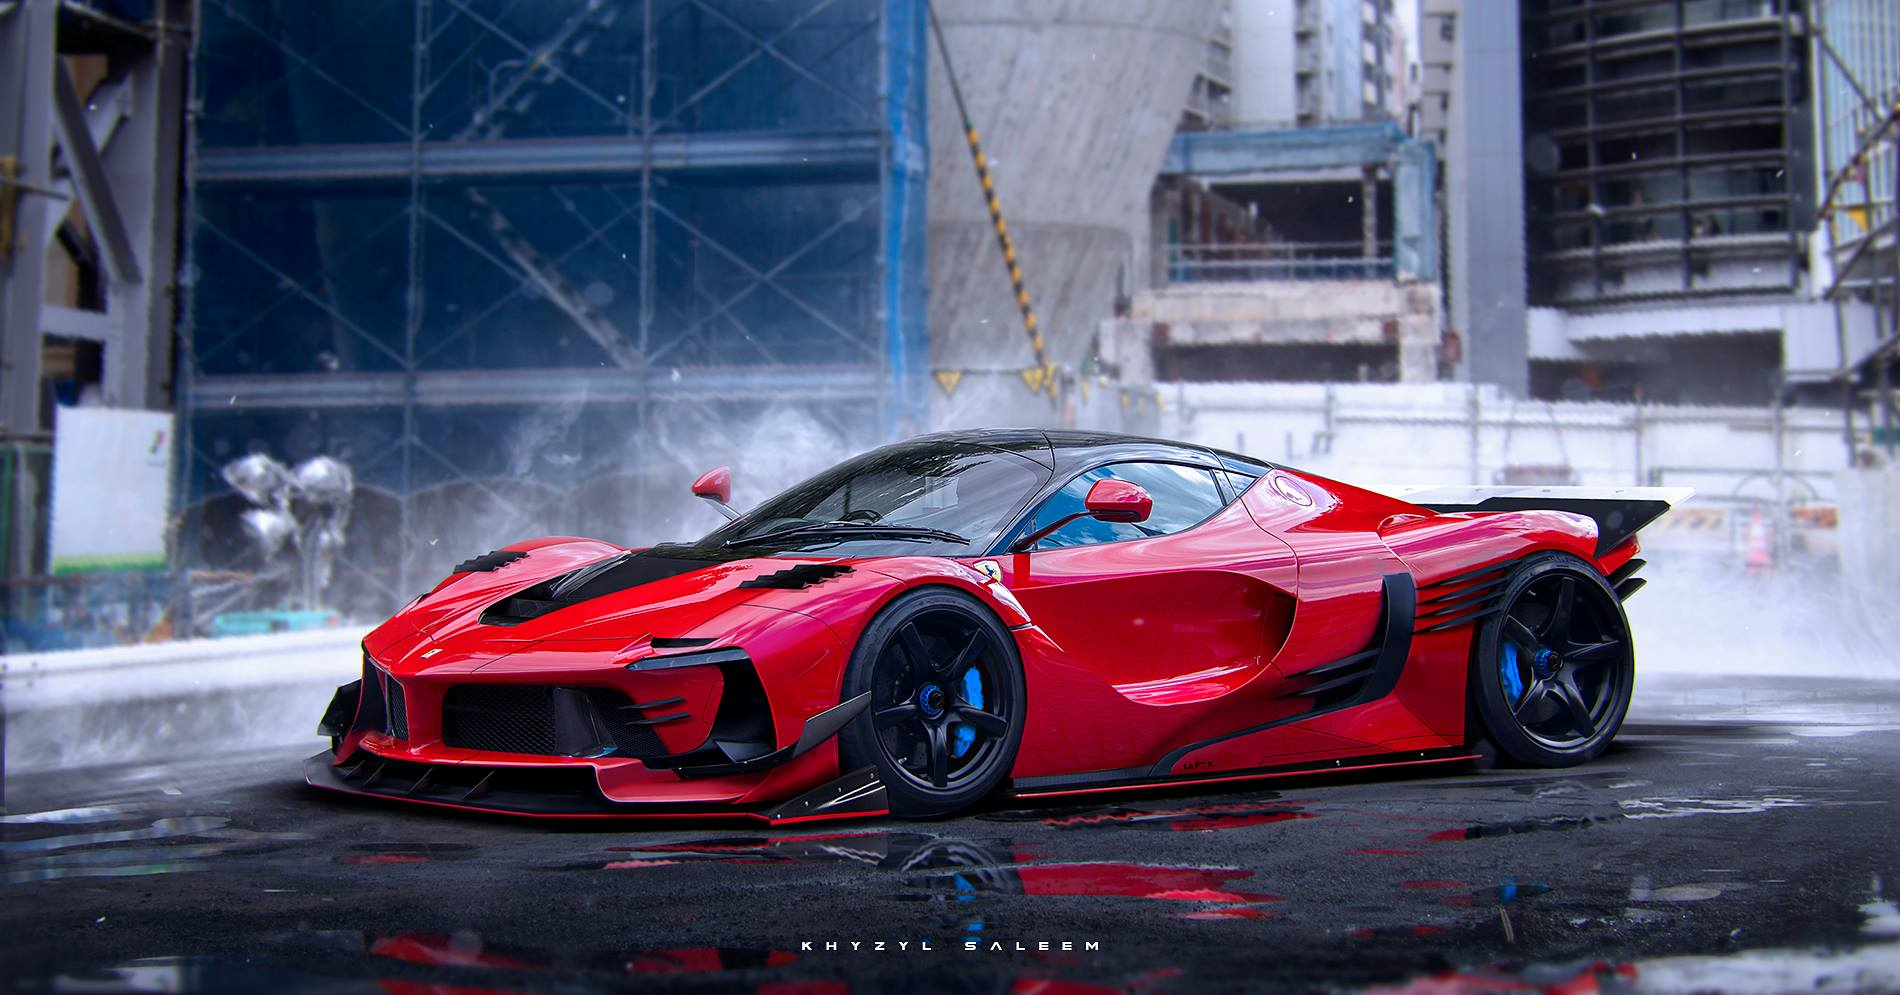 Wallpapers Autos De Carrera furthermore Trucos De Gta 5 36473774 moreover Watch besides 2019 Mercedes Cls Shooting Brake Gets Rendered Will Never Be Built 122040 also 66947 Tron Bike White. on motos gta 5